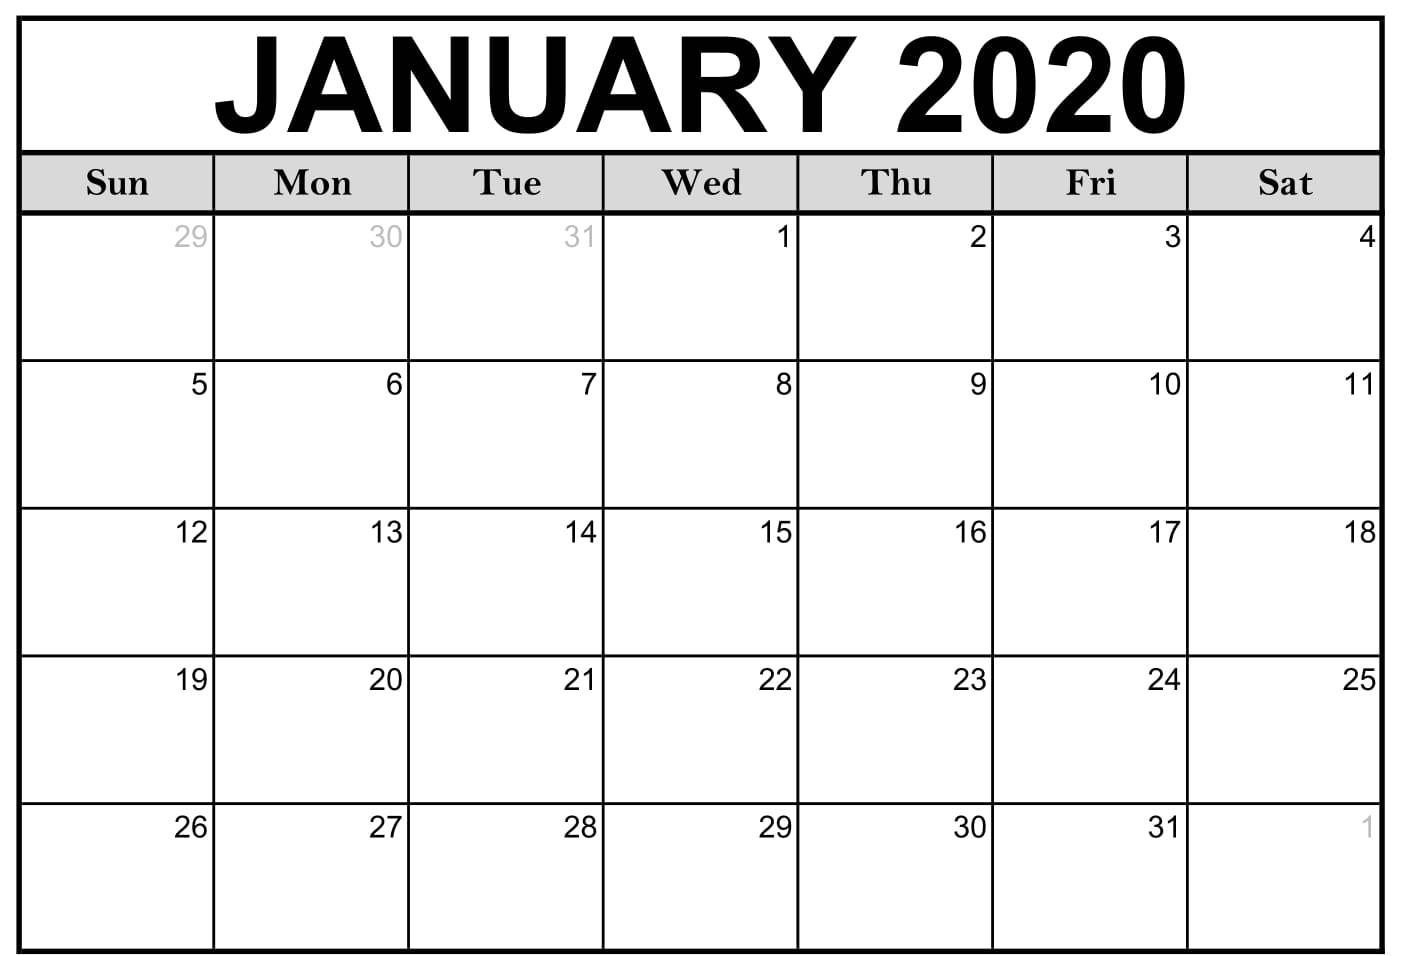 January 2020 Calendar Pdf In Large Size Paper Sheet | Free